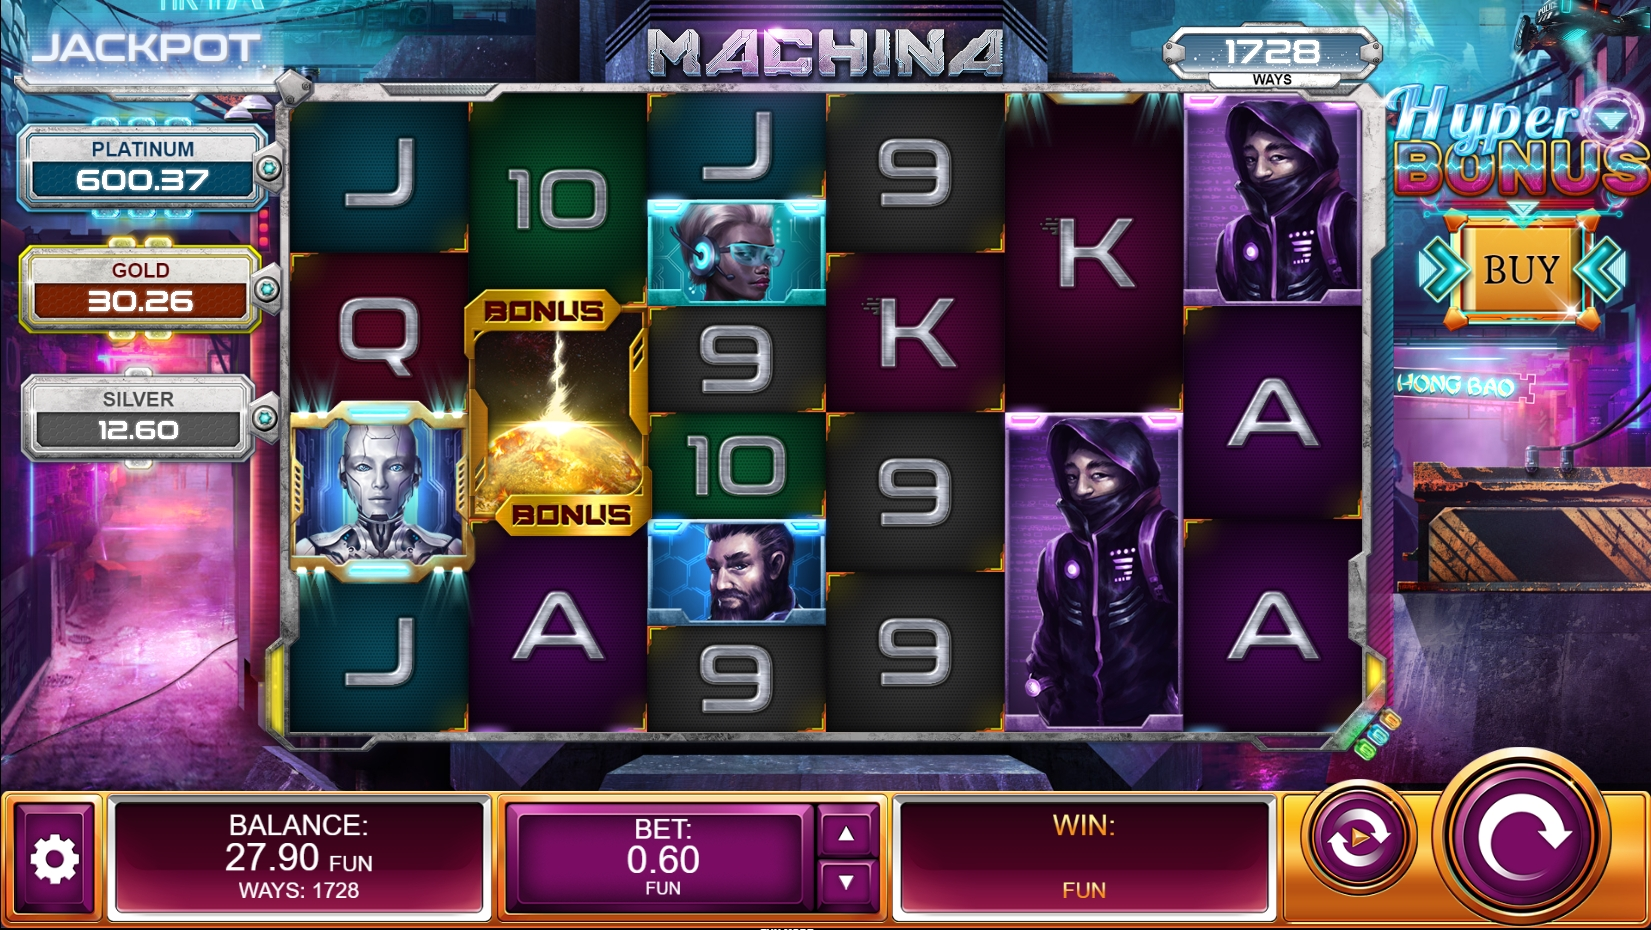 Machina Slot Review Basegame